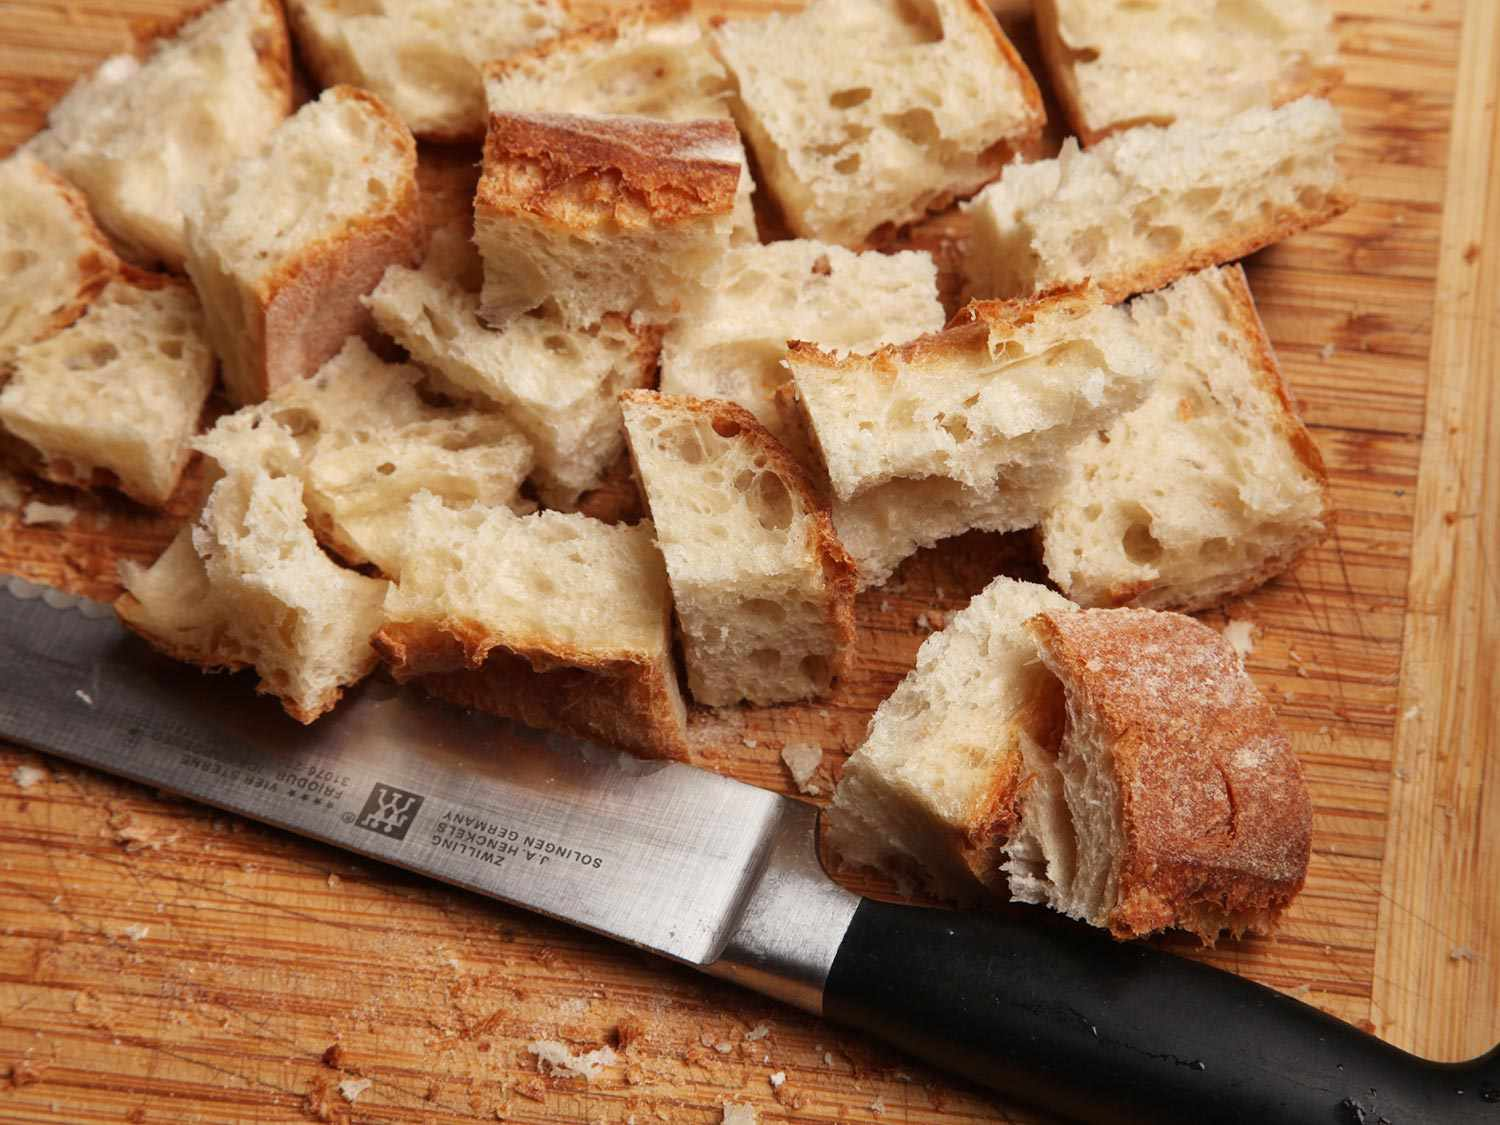 Cubed crusty bread on a wooden cutting board, next to a knife